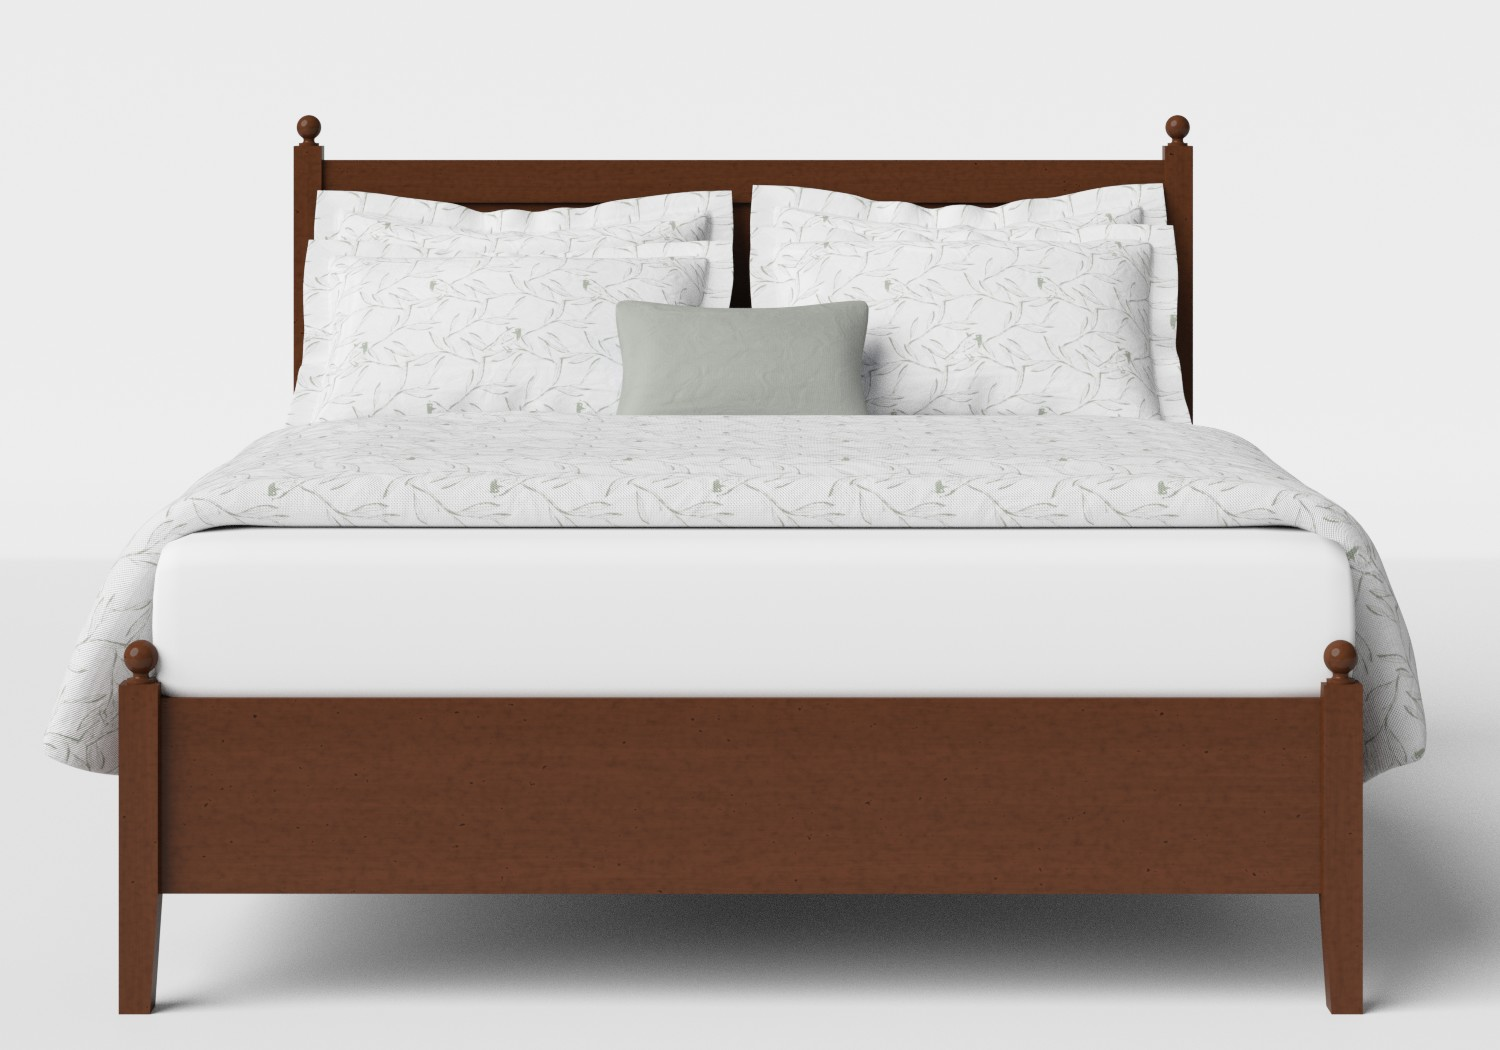 Marbella Low Footend Wood Bed in Dark Cherry